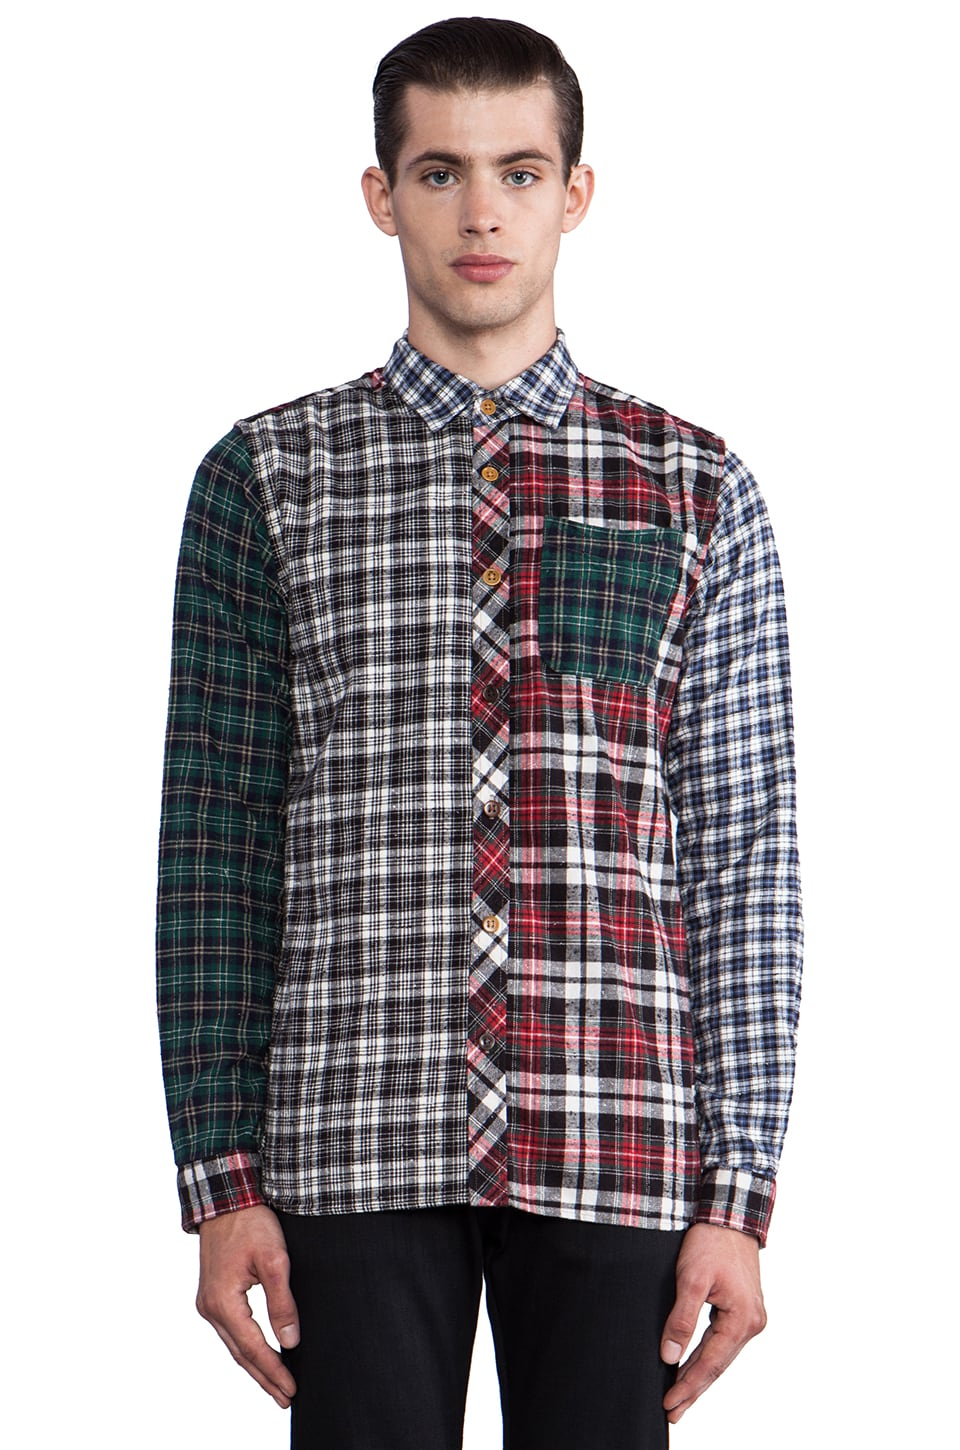 Scotch & Soda Flannel Check Shirt in Multi